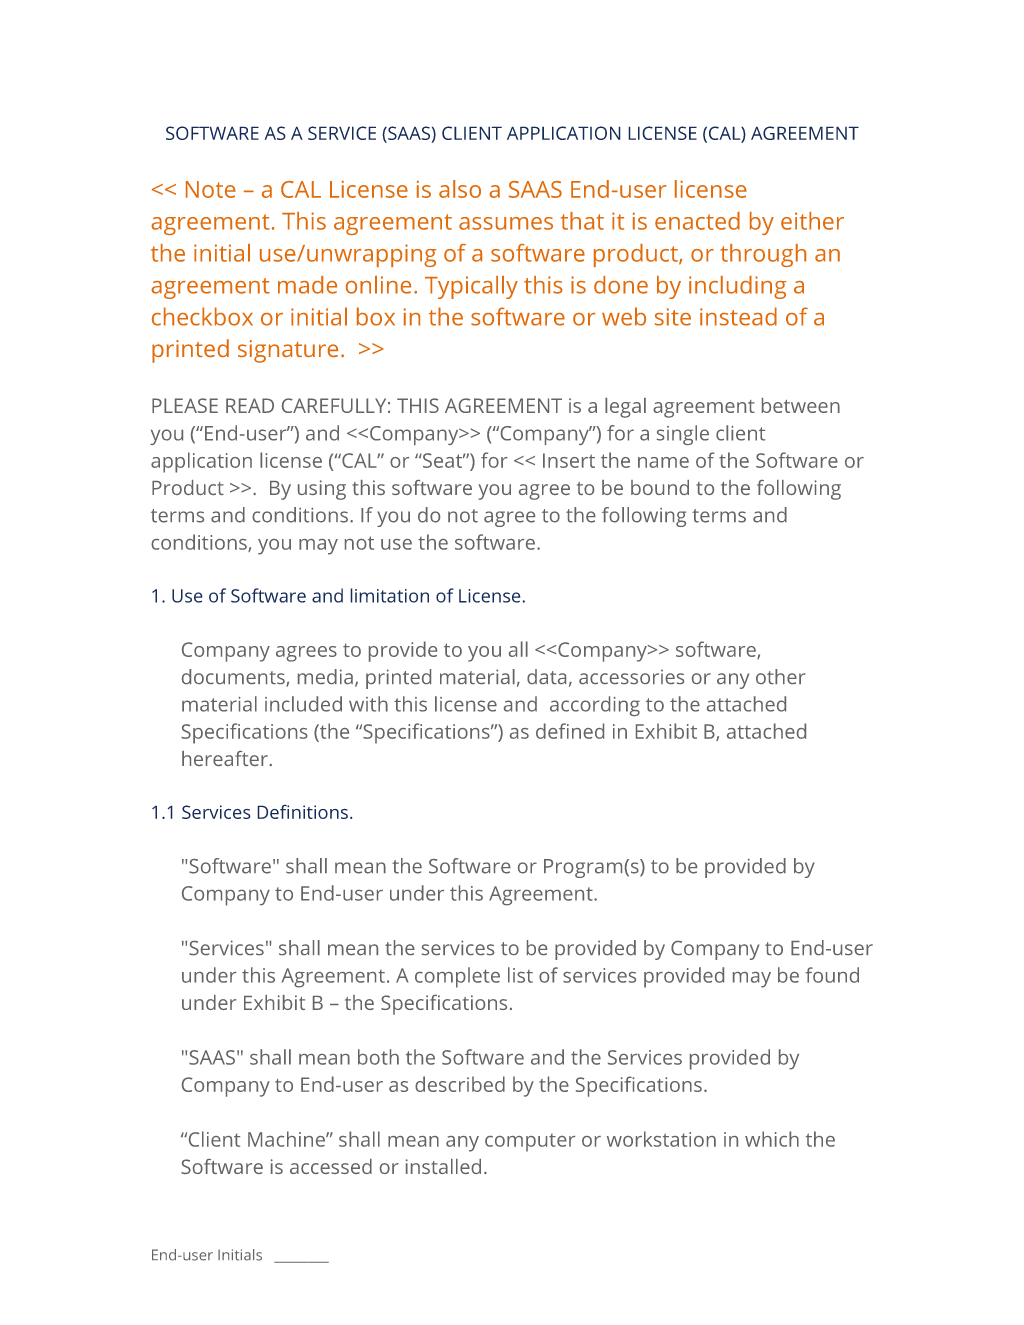 Saas Software As A Service Client License 3 Easy Steps